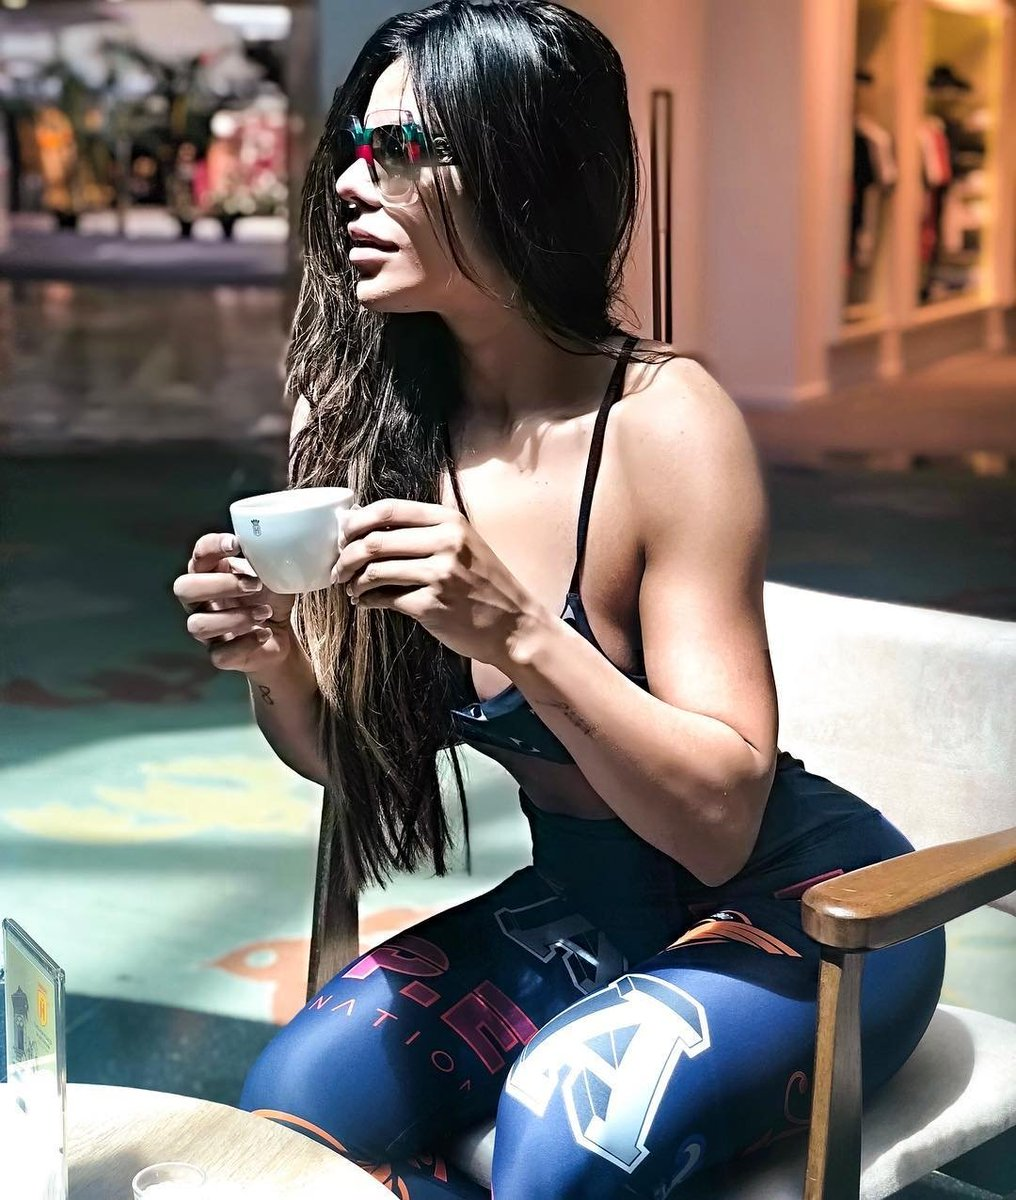 Coffee time! ❤️ #beforegym https://t.co/fcF7BsYr3p